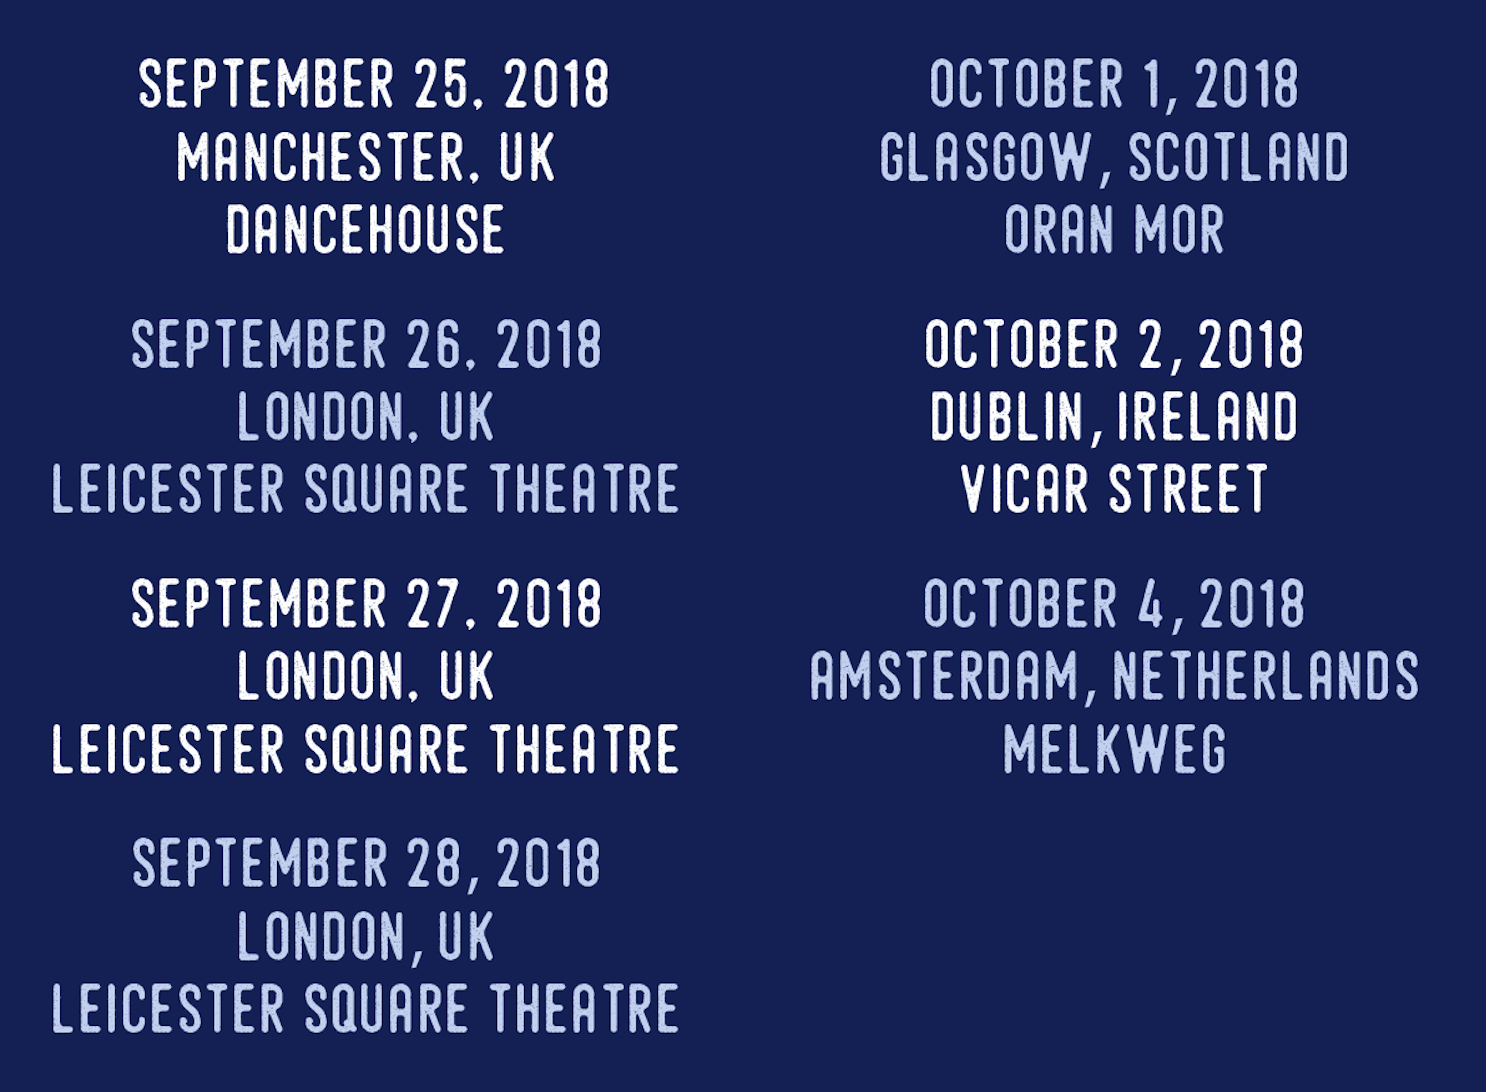 OH COME ON European Tour Dates Announced (August 23, 2018)